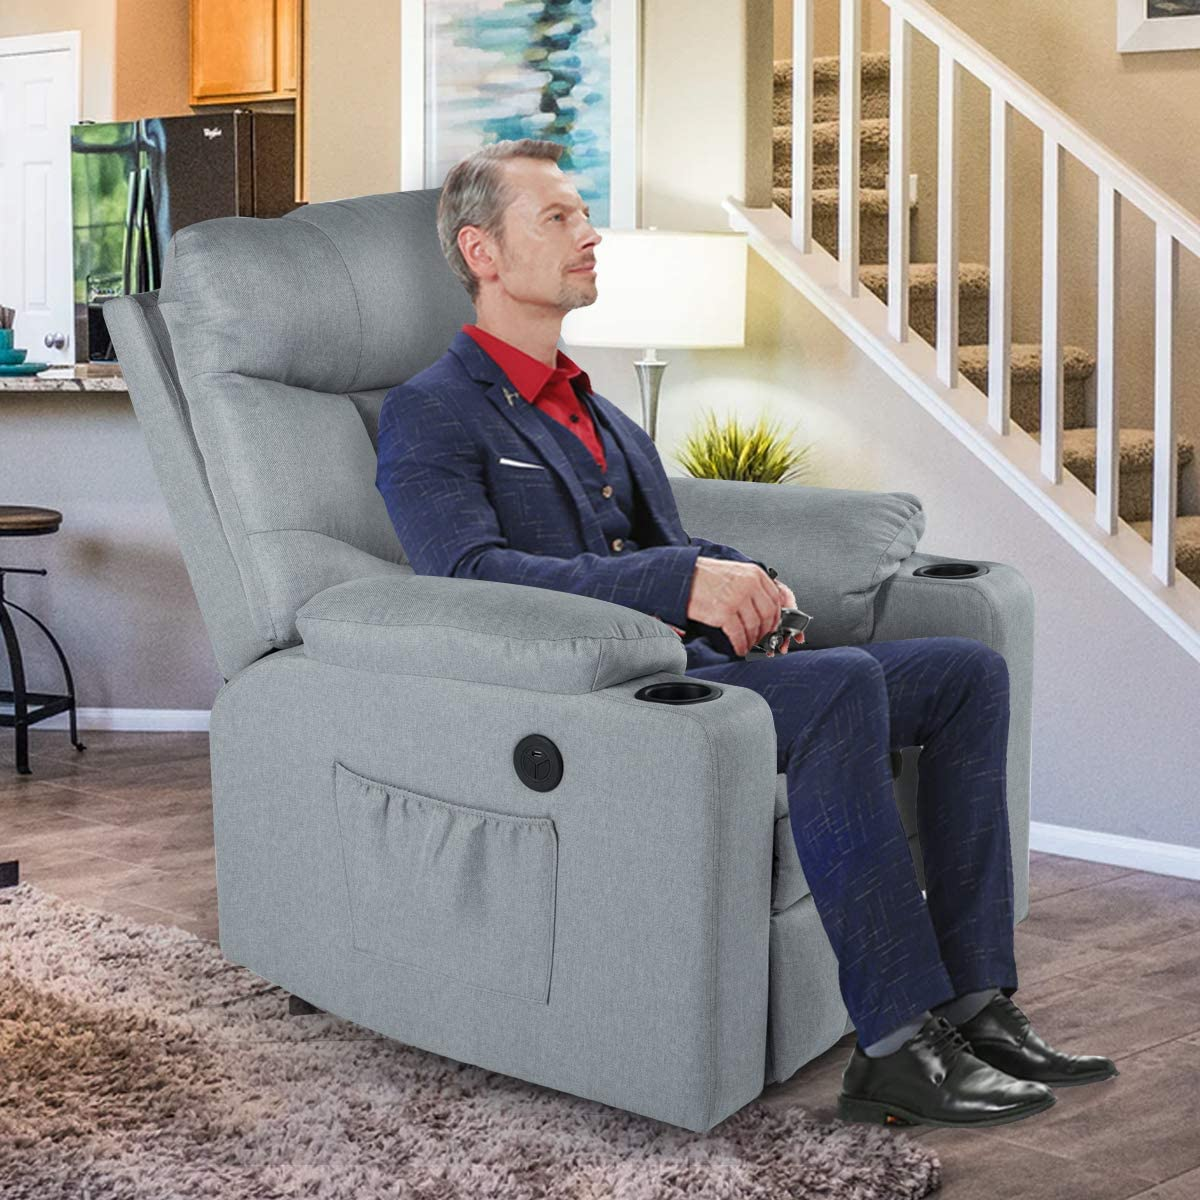 Best Living Room Chair for Back Pain 2020 [Reviews and ...